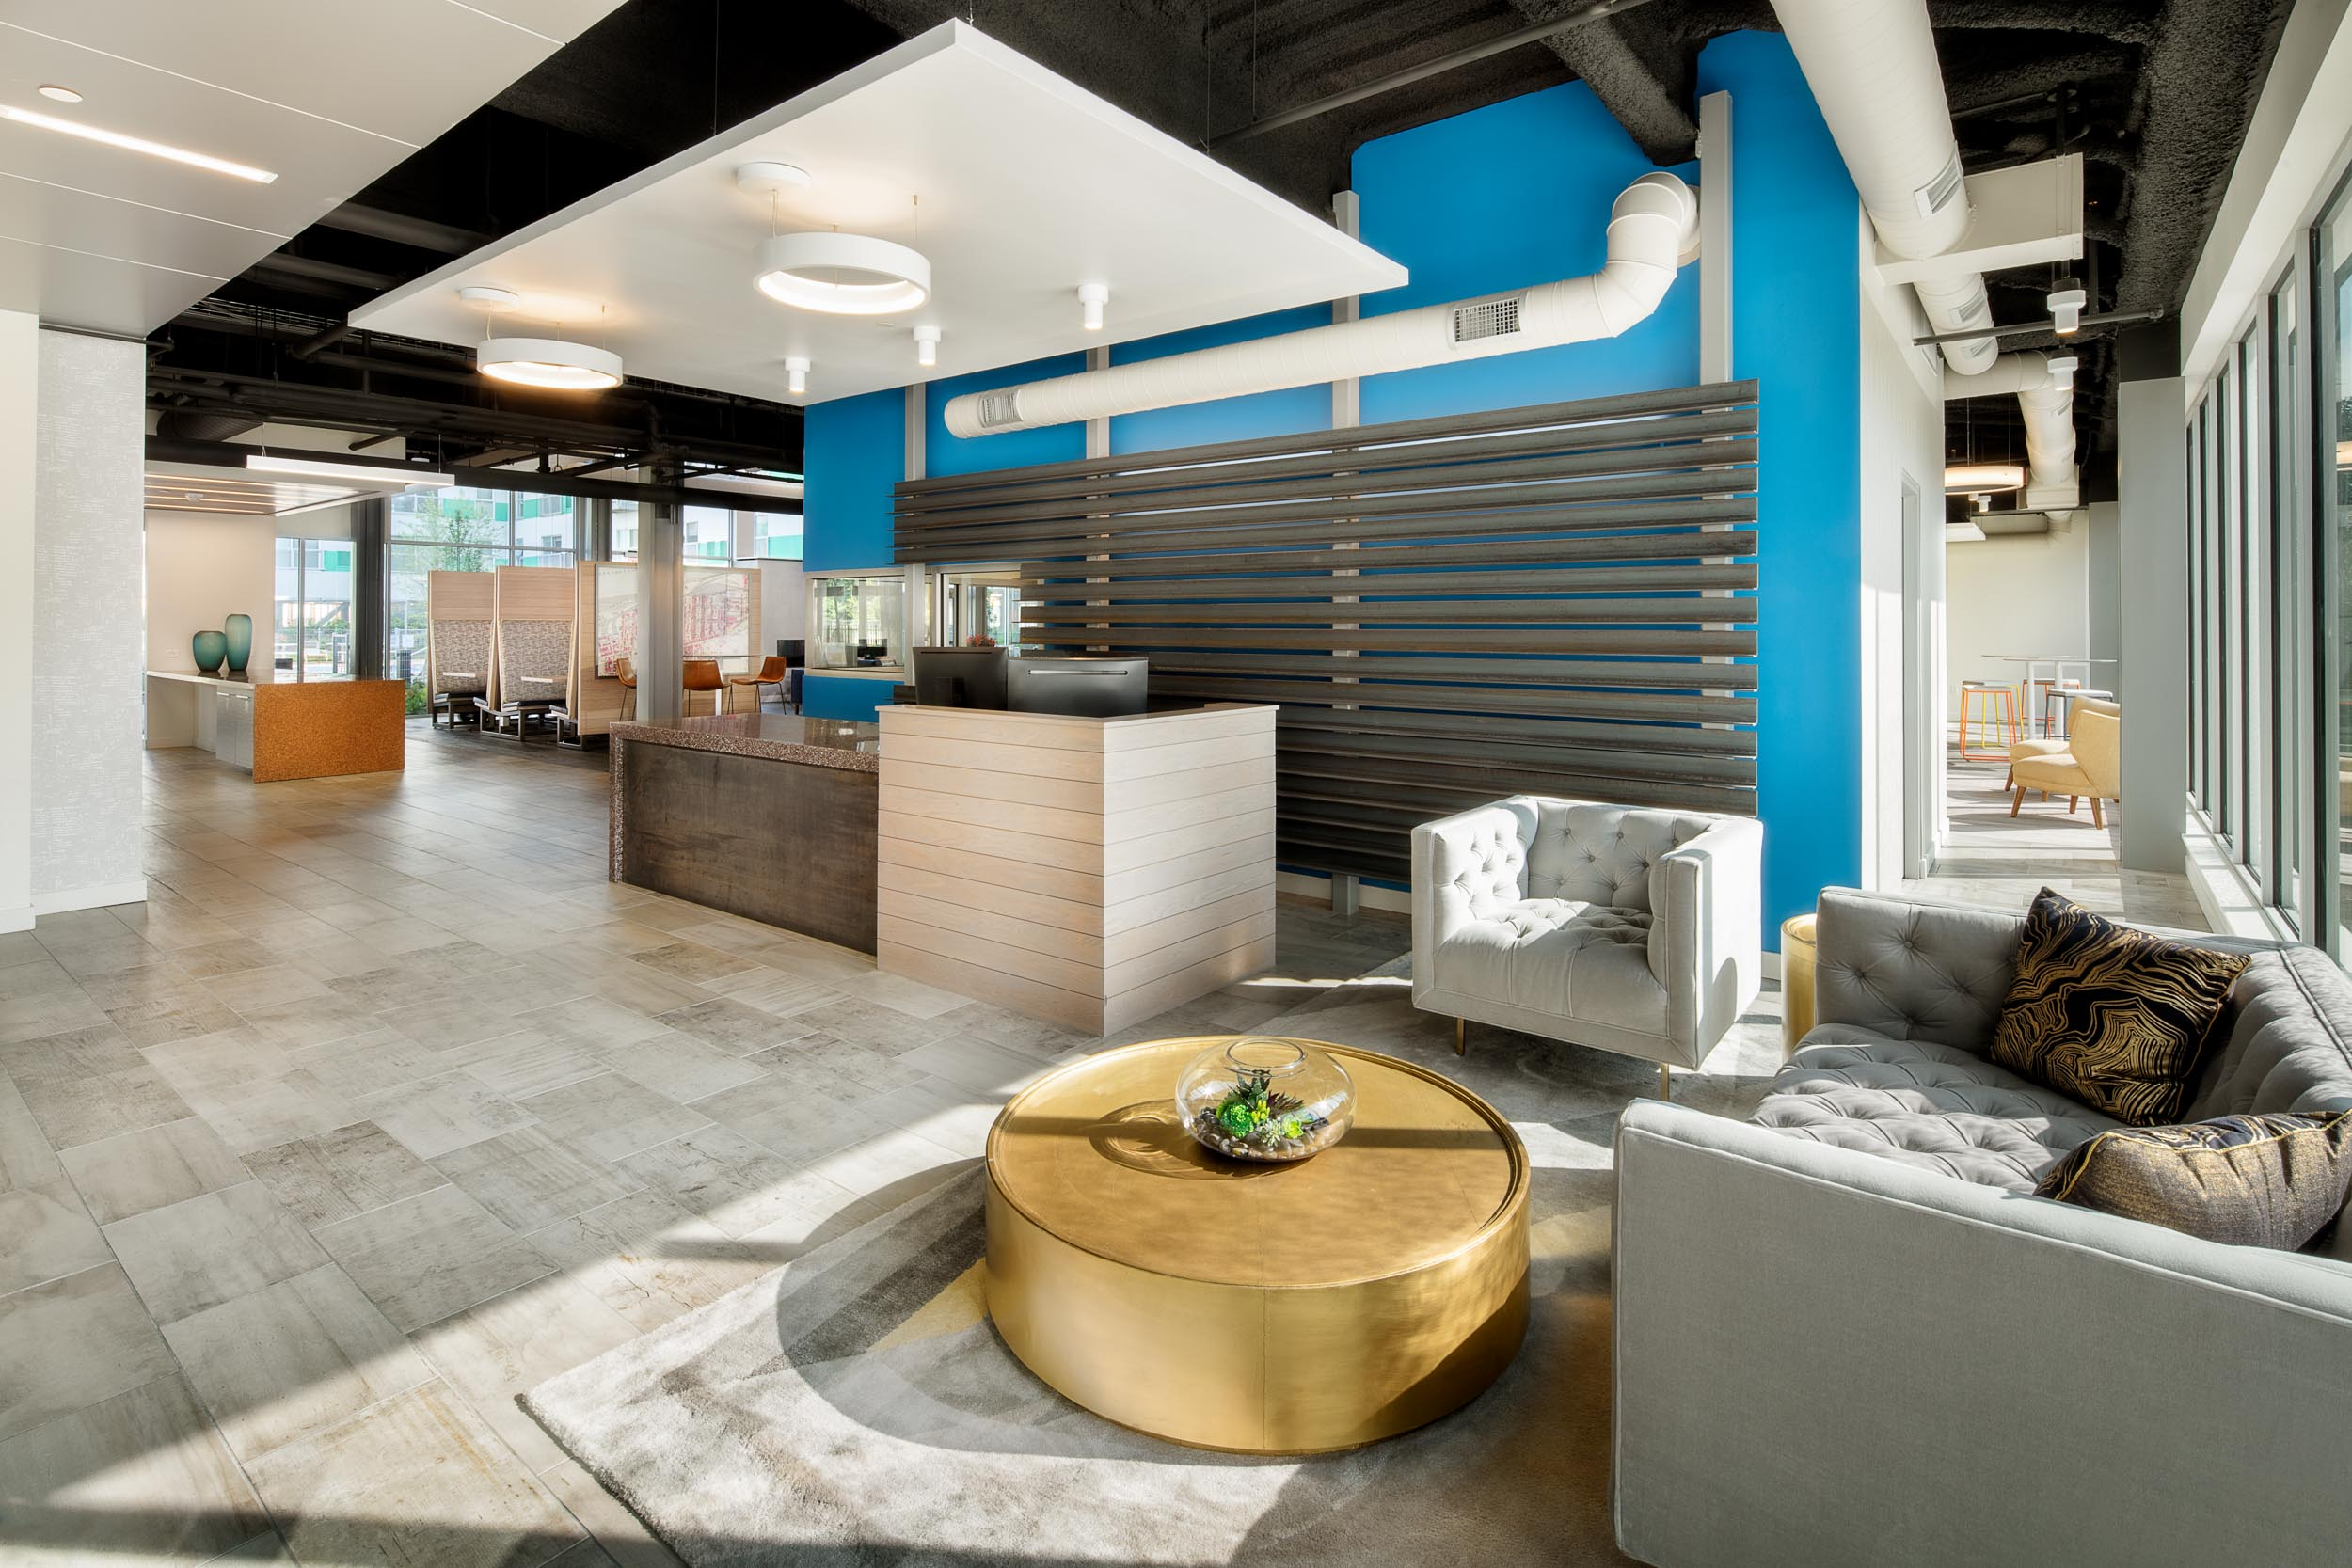 apartment_city_foundry_pittsburgh-10.jpg